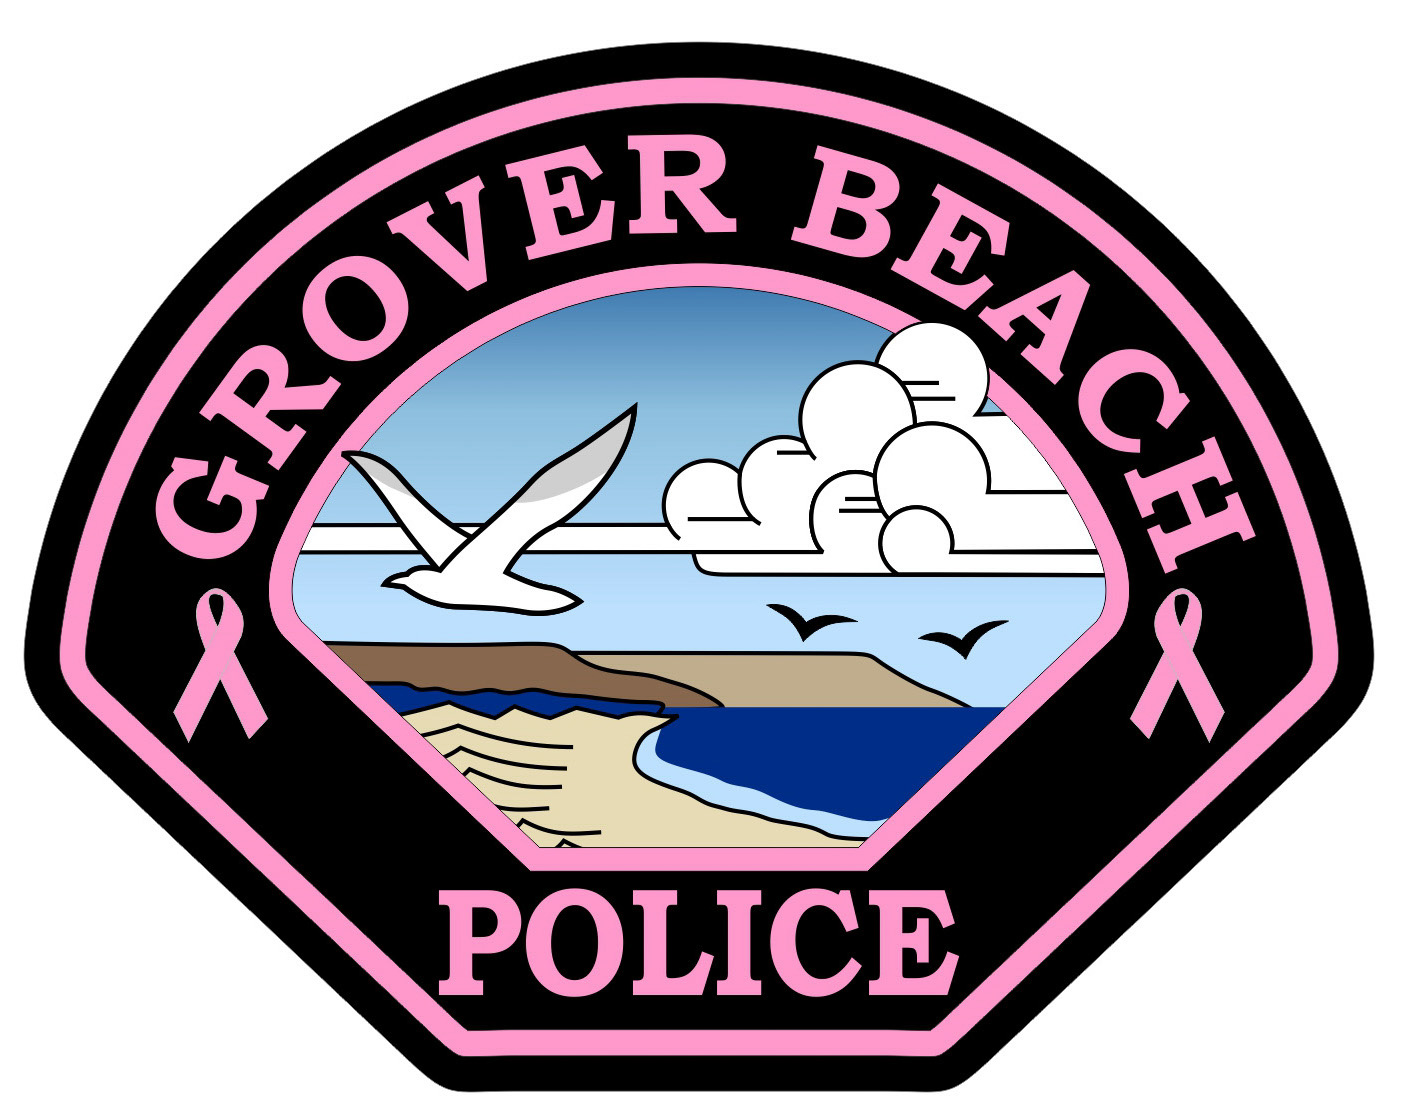 GROVER BEACH POLICE (CA) - PINK COLOR_edited_Cropped_edited_2.jpg